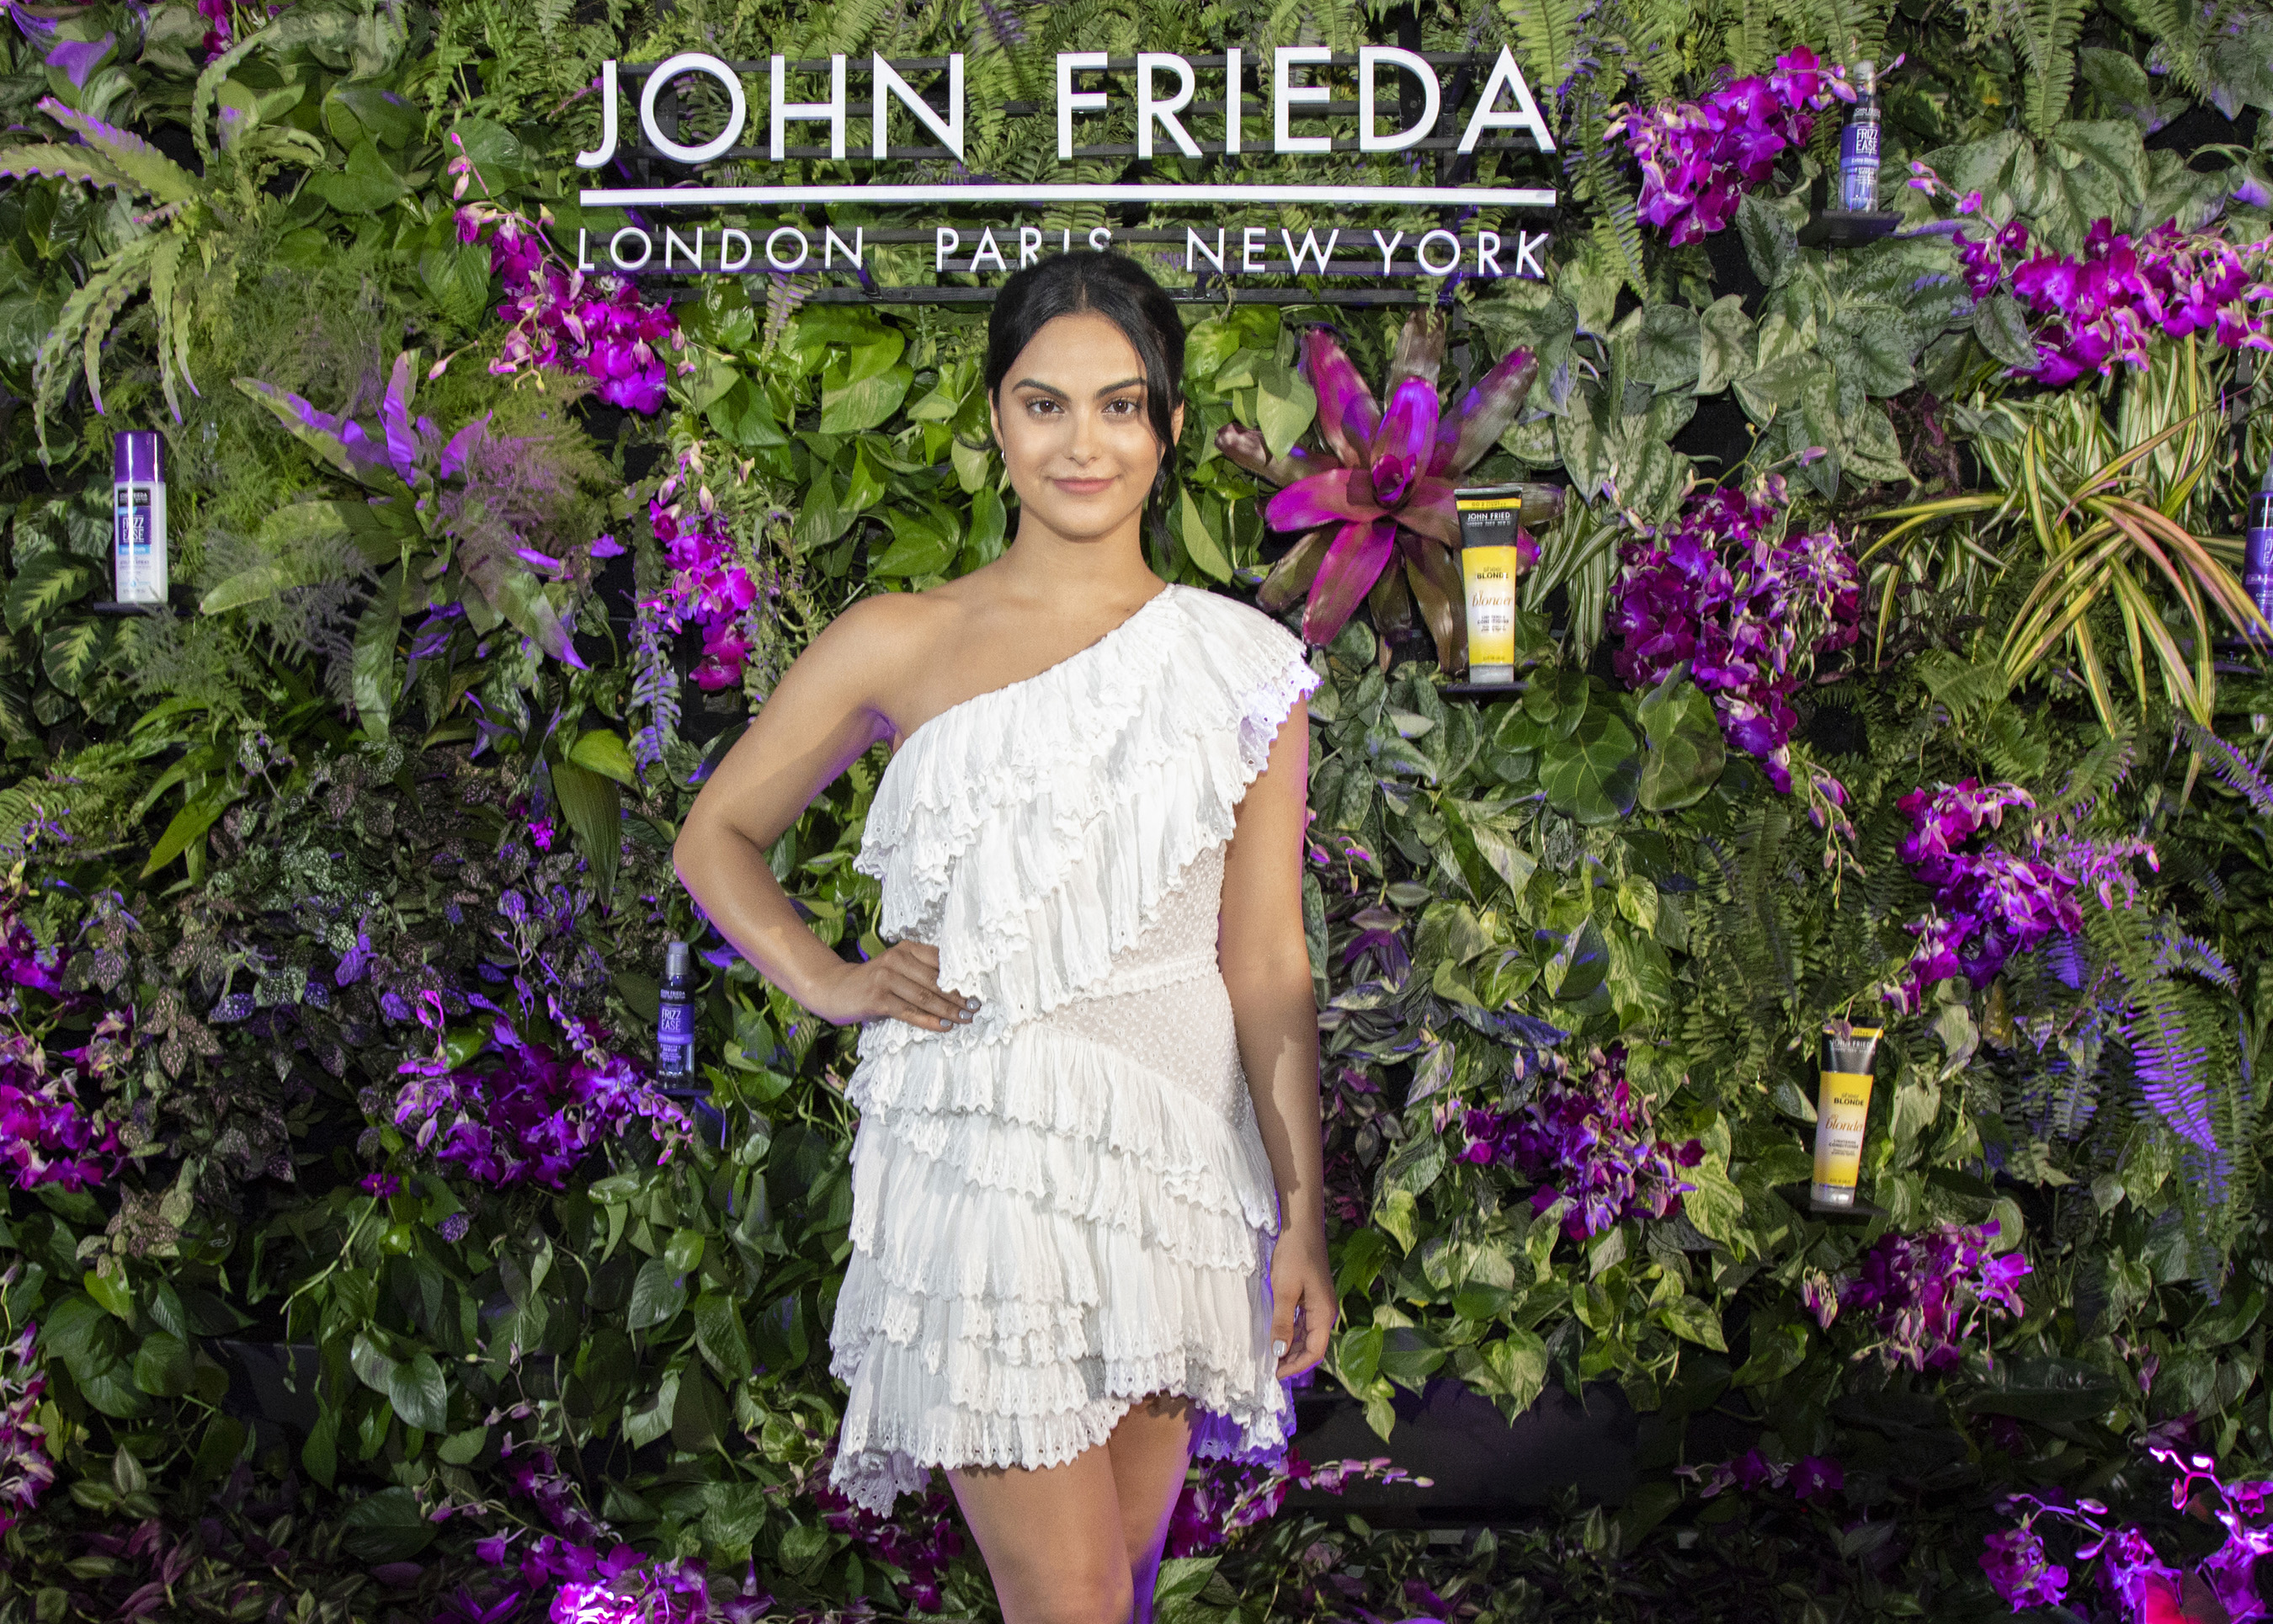 Camila Mendes celebrated her collaboration with John Frieda Hair Care in Miami